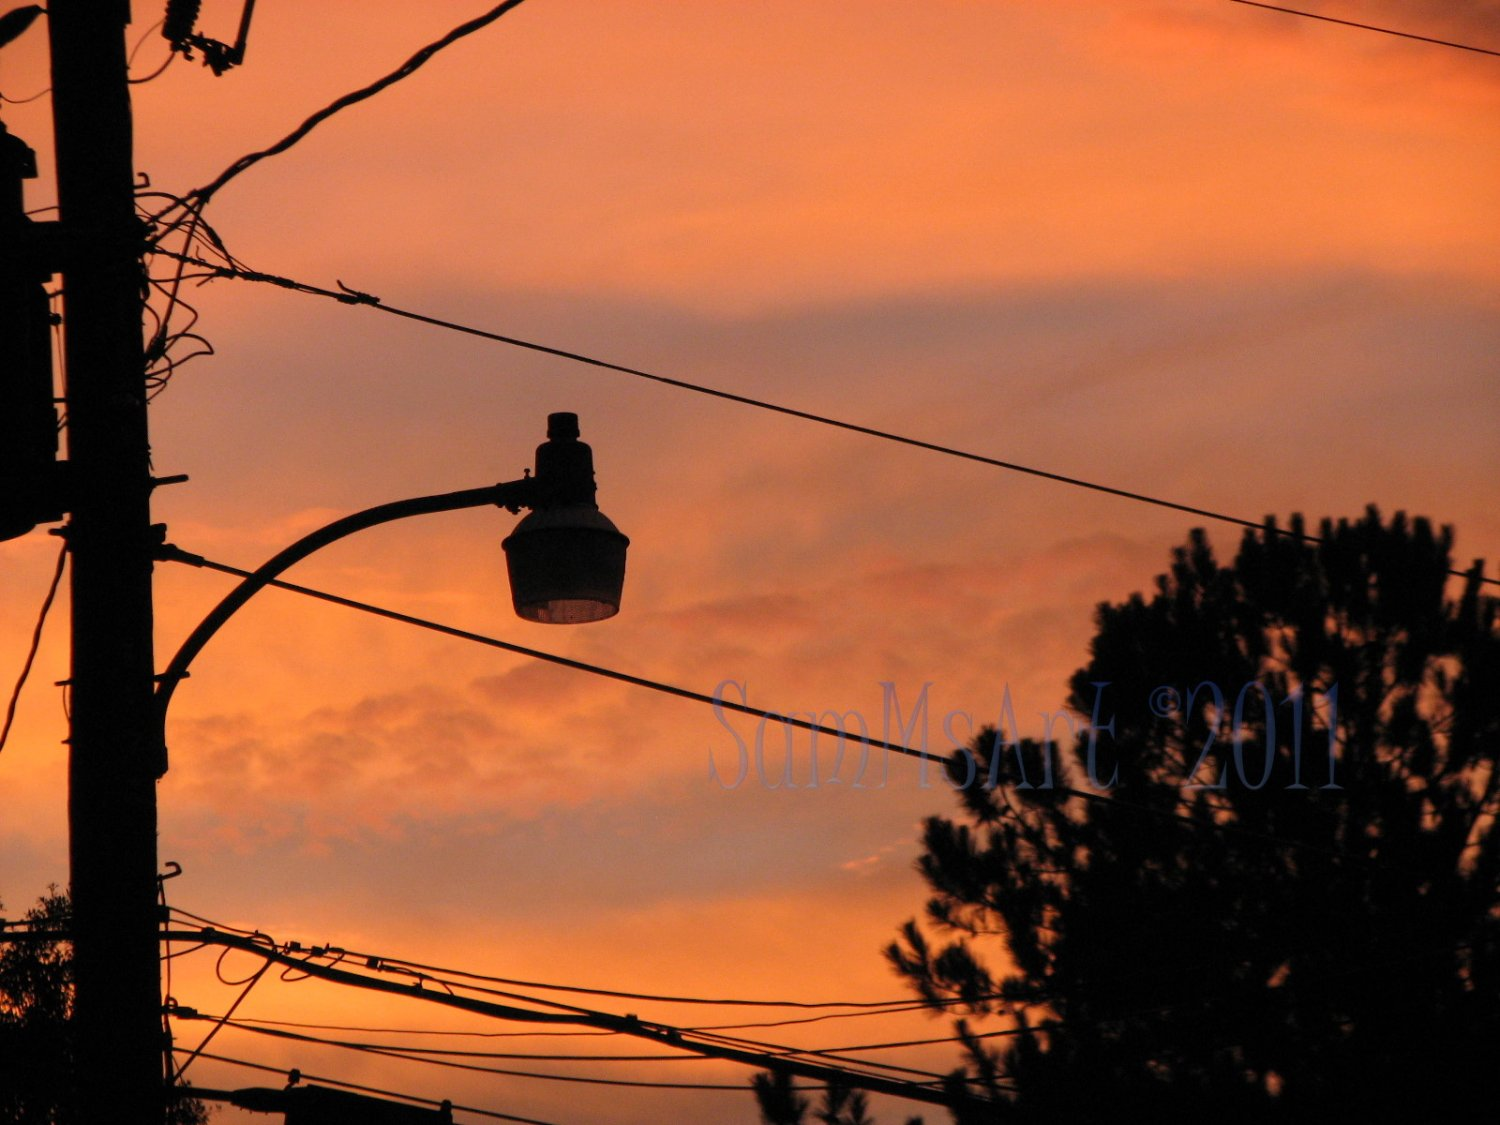 August 29 - 8x10 Print, Digital Fine Art Image Photo - Sunset, summer, fall, Power lines, Clouds